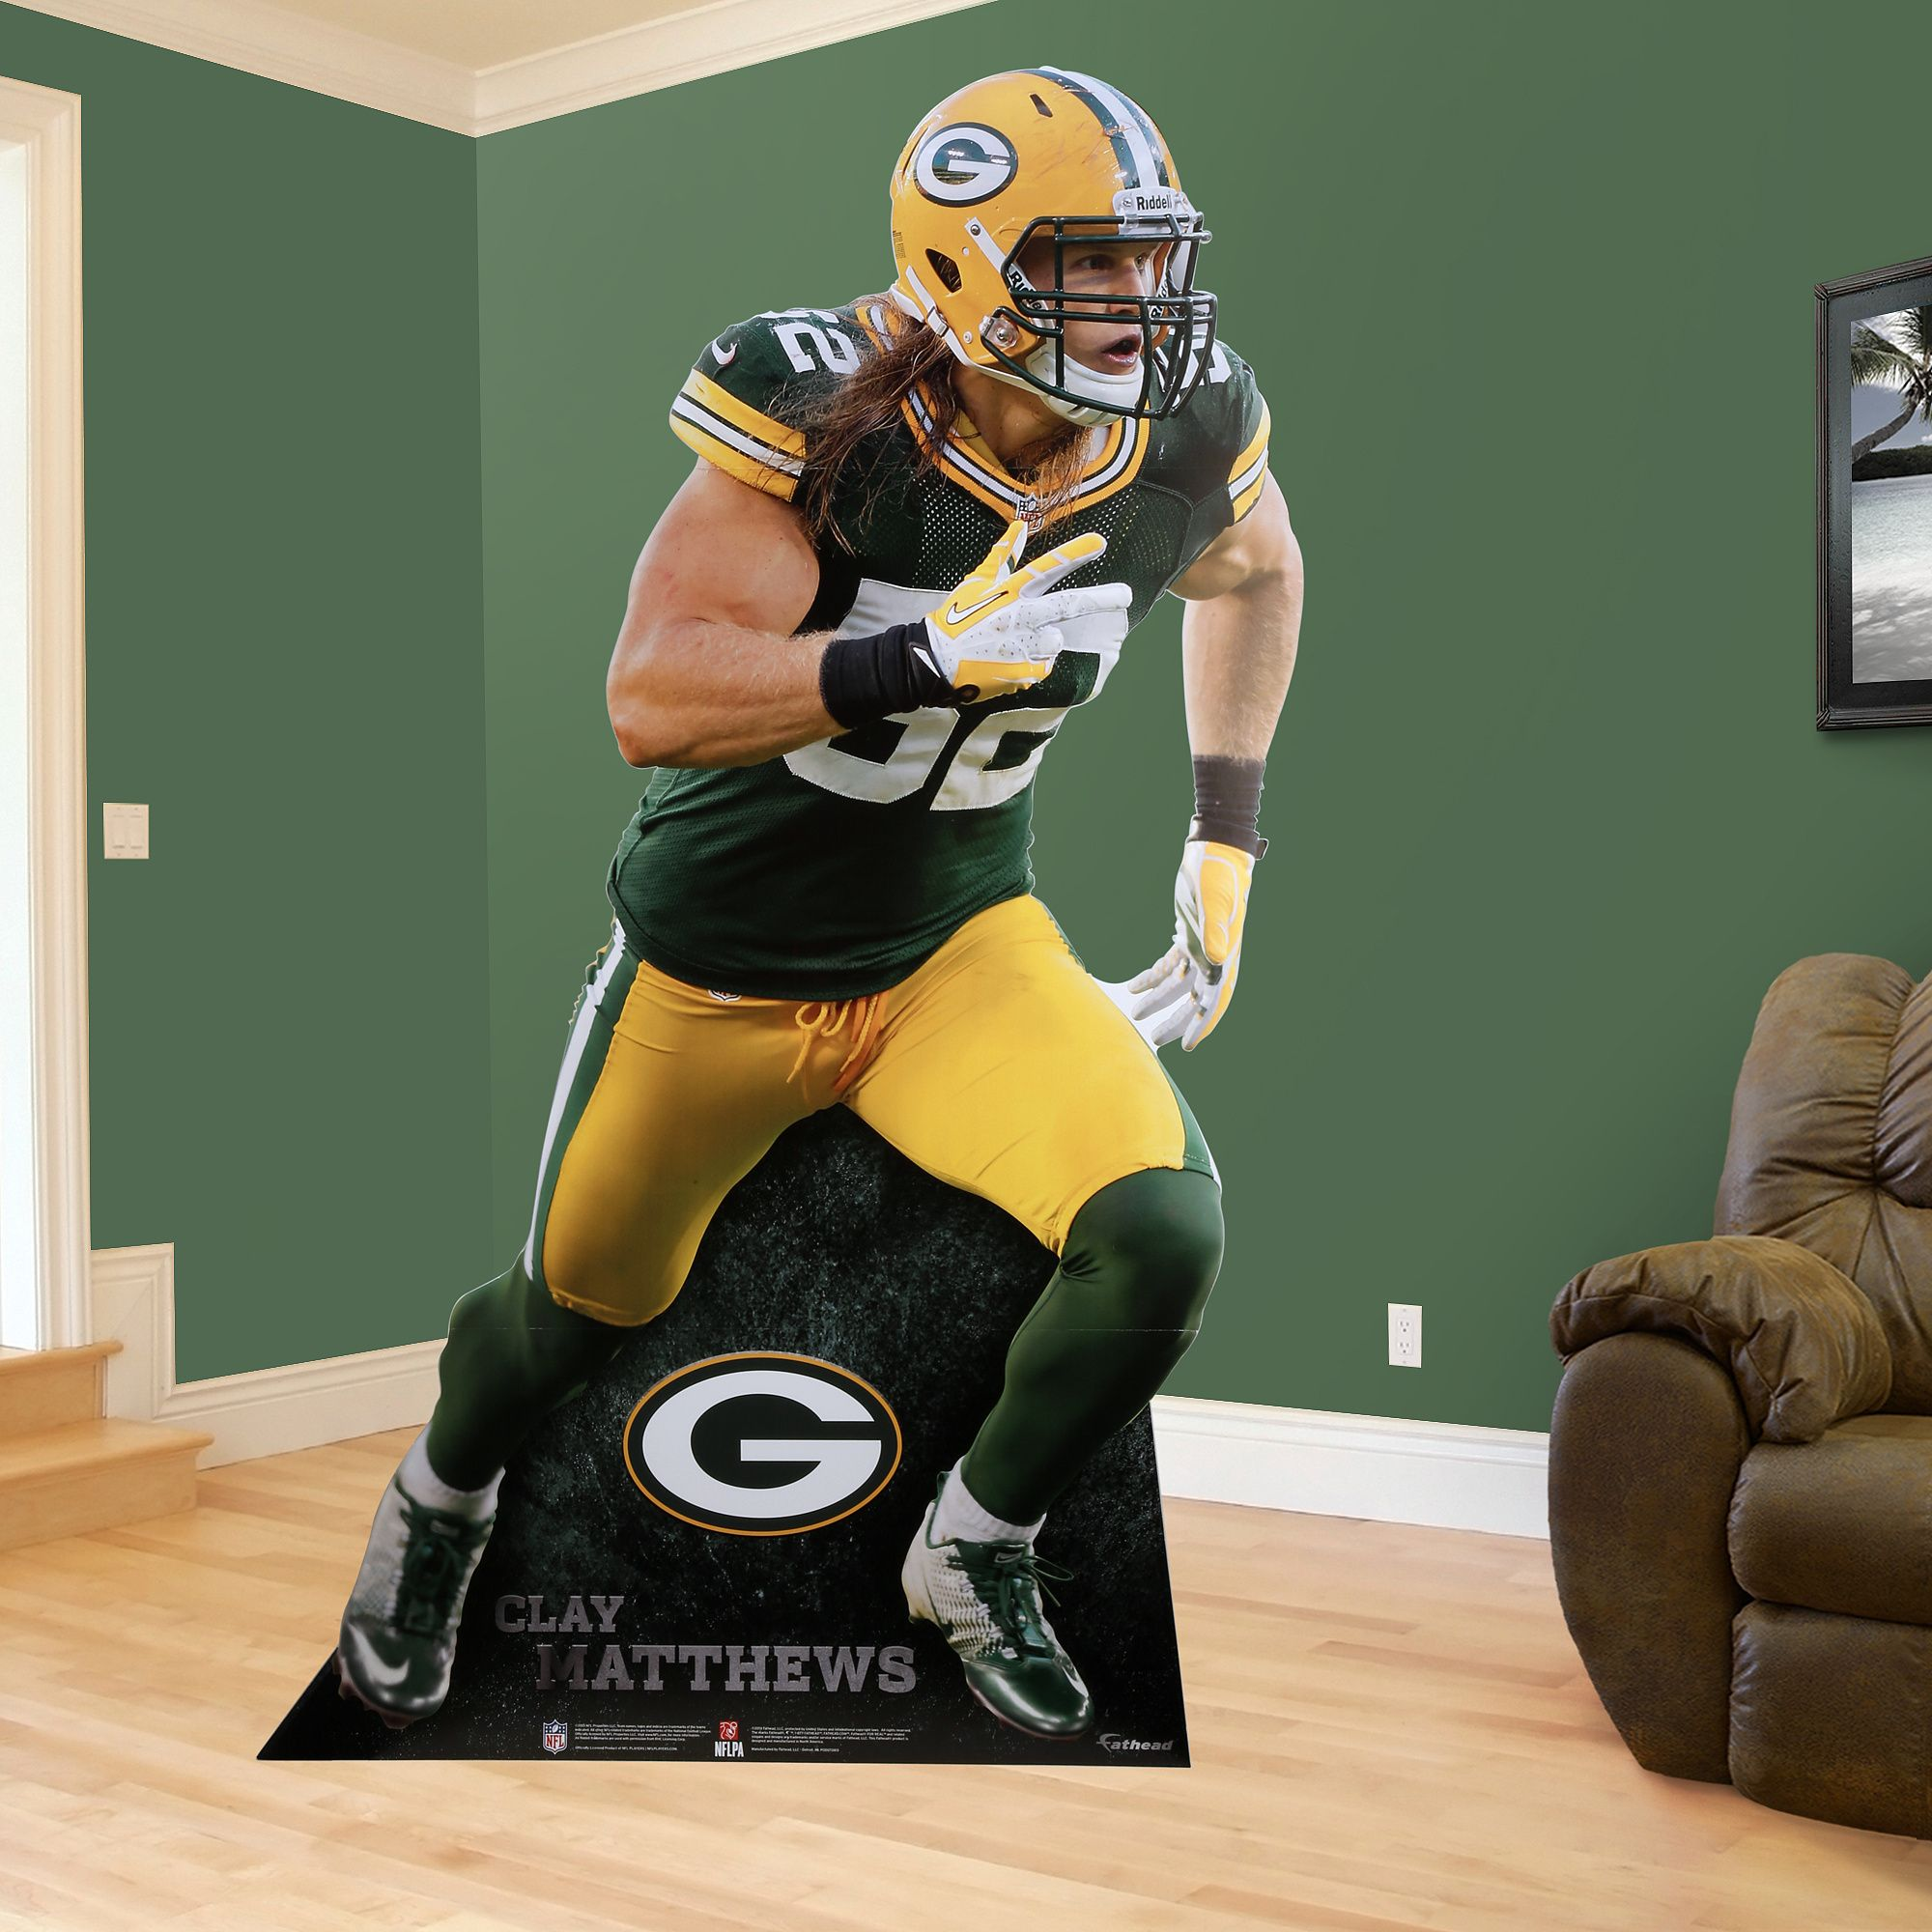 Clay Matthews Stand Out I Think I Ll Just Position This In Front Of The Door At Night In Ca Clay Matthews Green Bay Packers Green Bay Packers Gifts